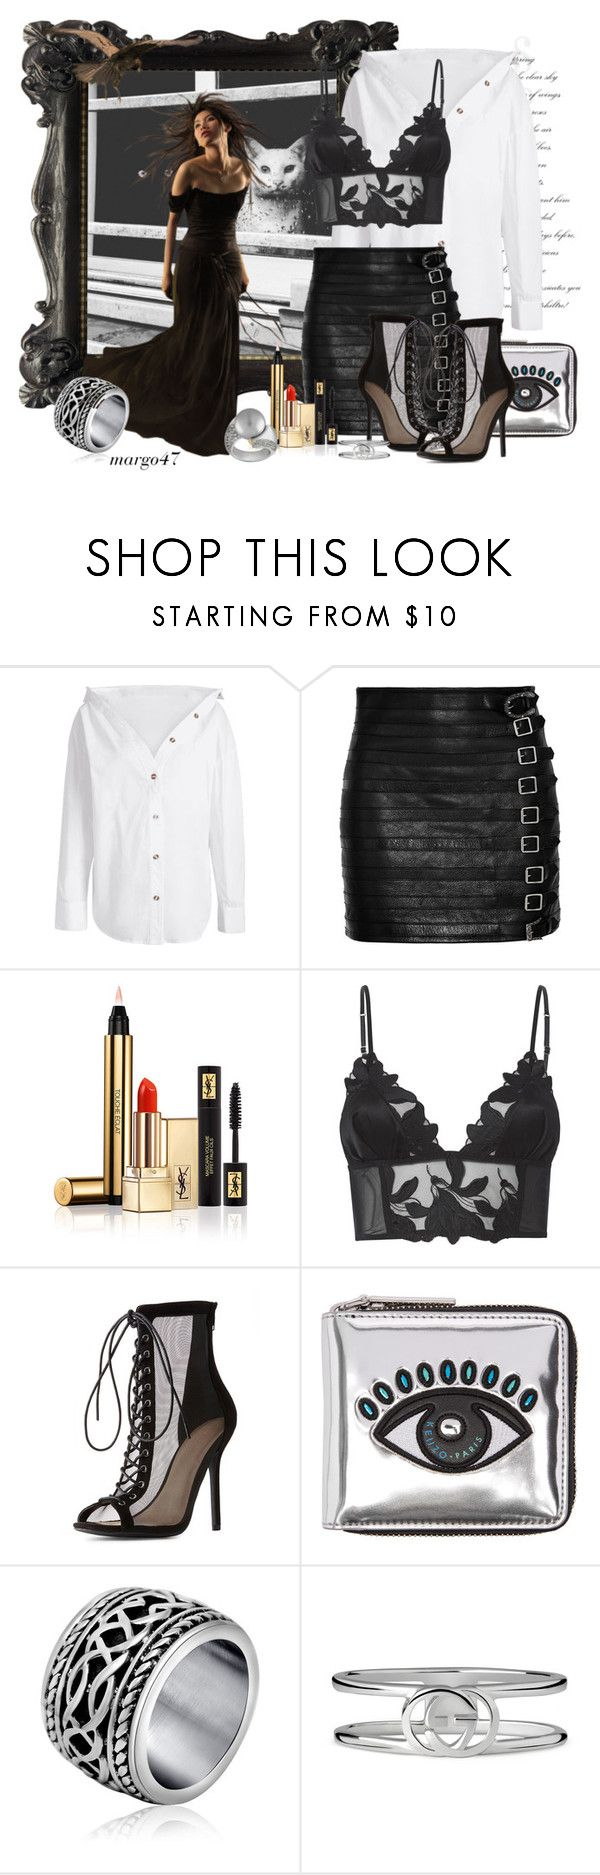 """kocie oczy"" by margo47 ❤ liked on Polyvore featuring Gucci, Yves Saint Laurent, Fleur du Mal, Charlotte Russe and Kenzo"